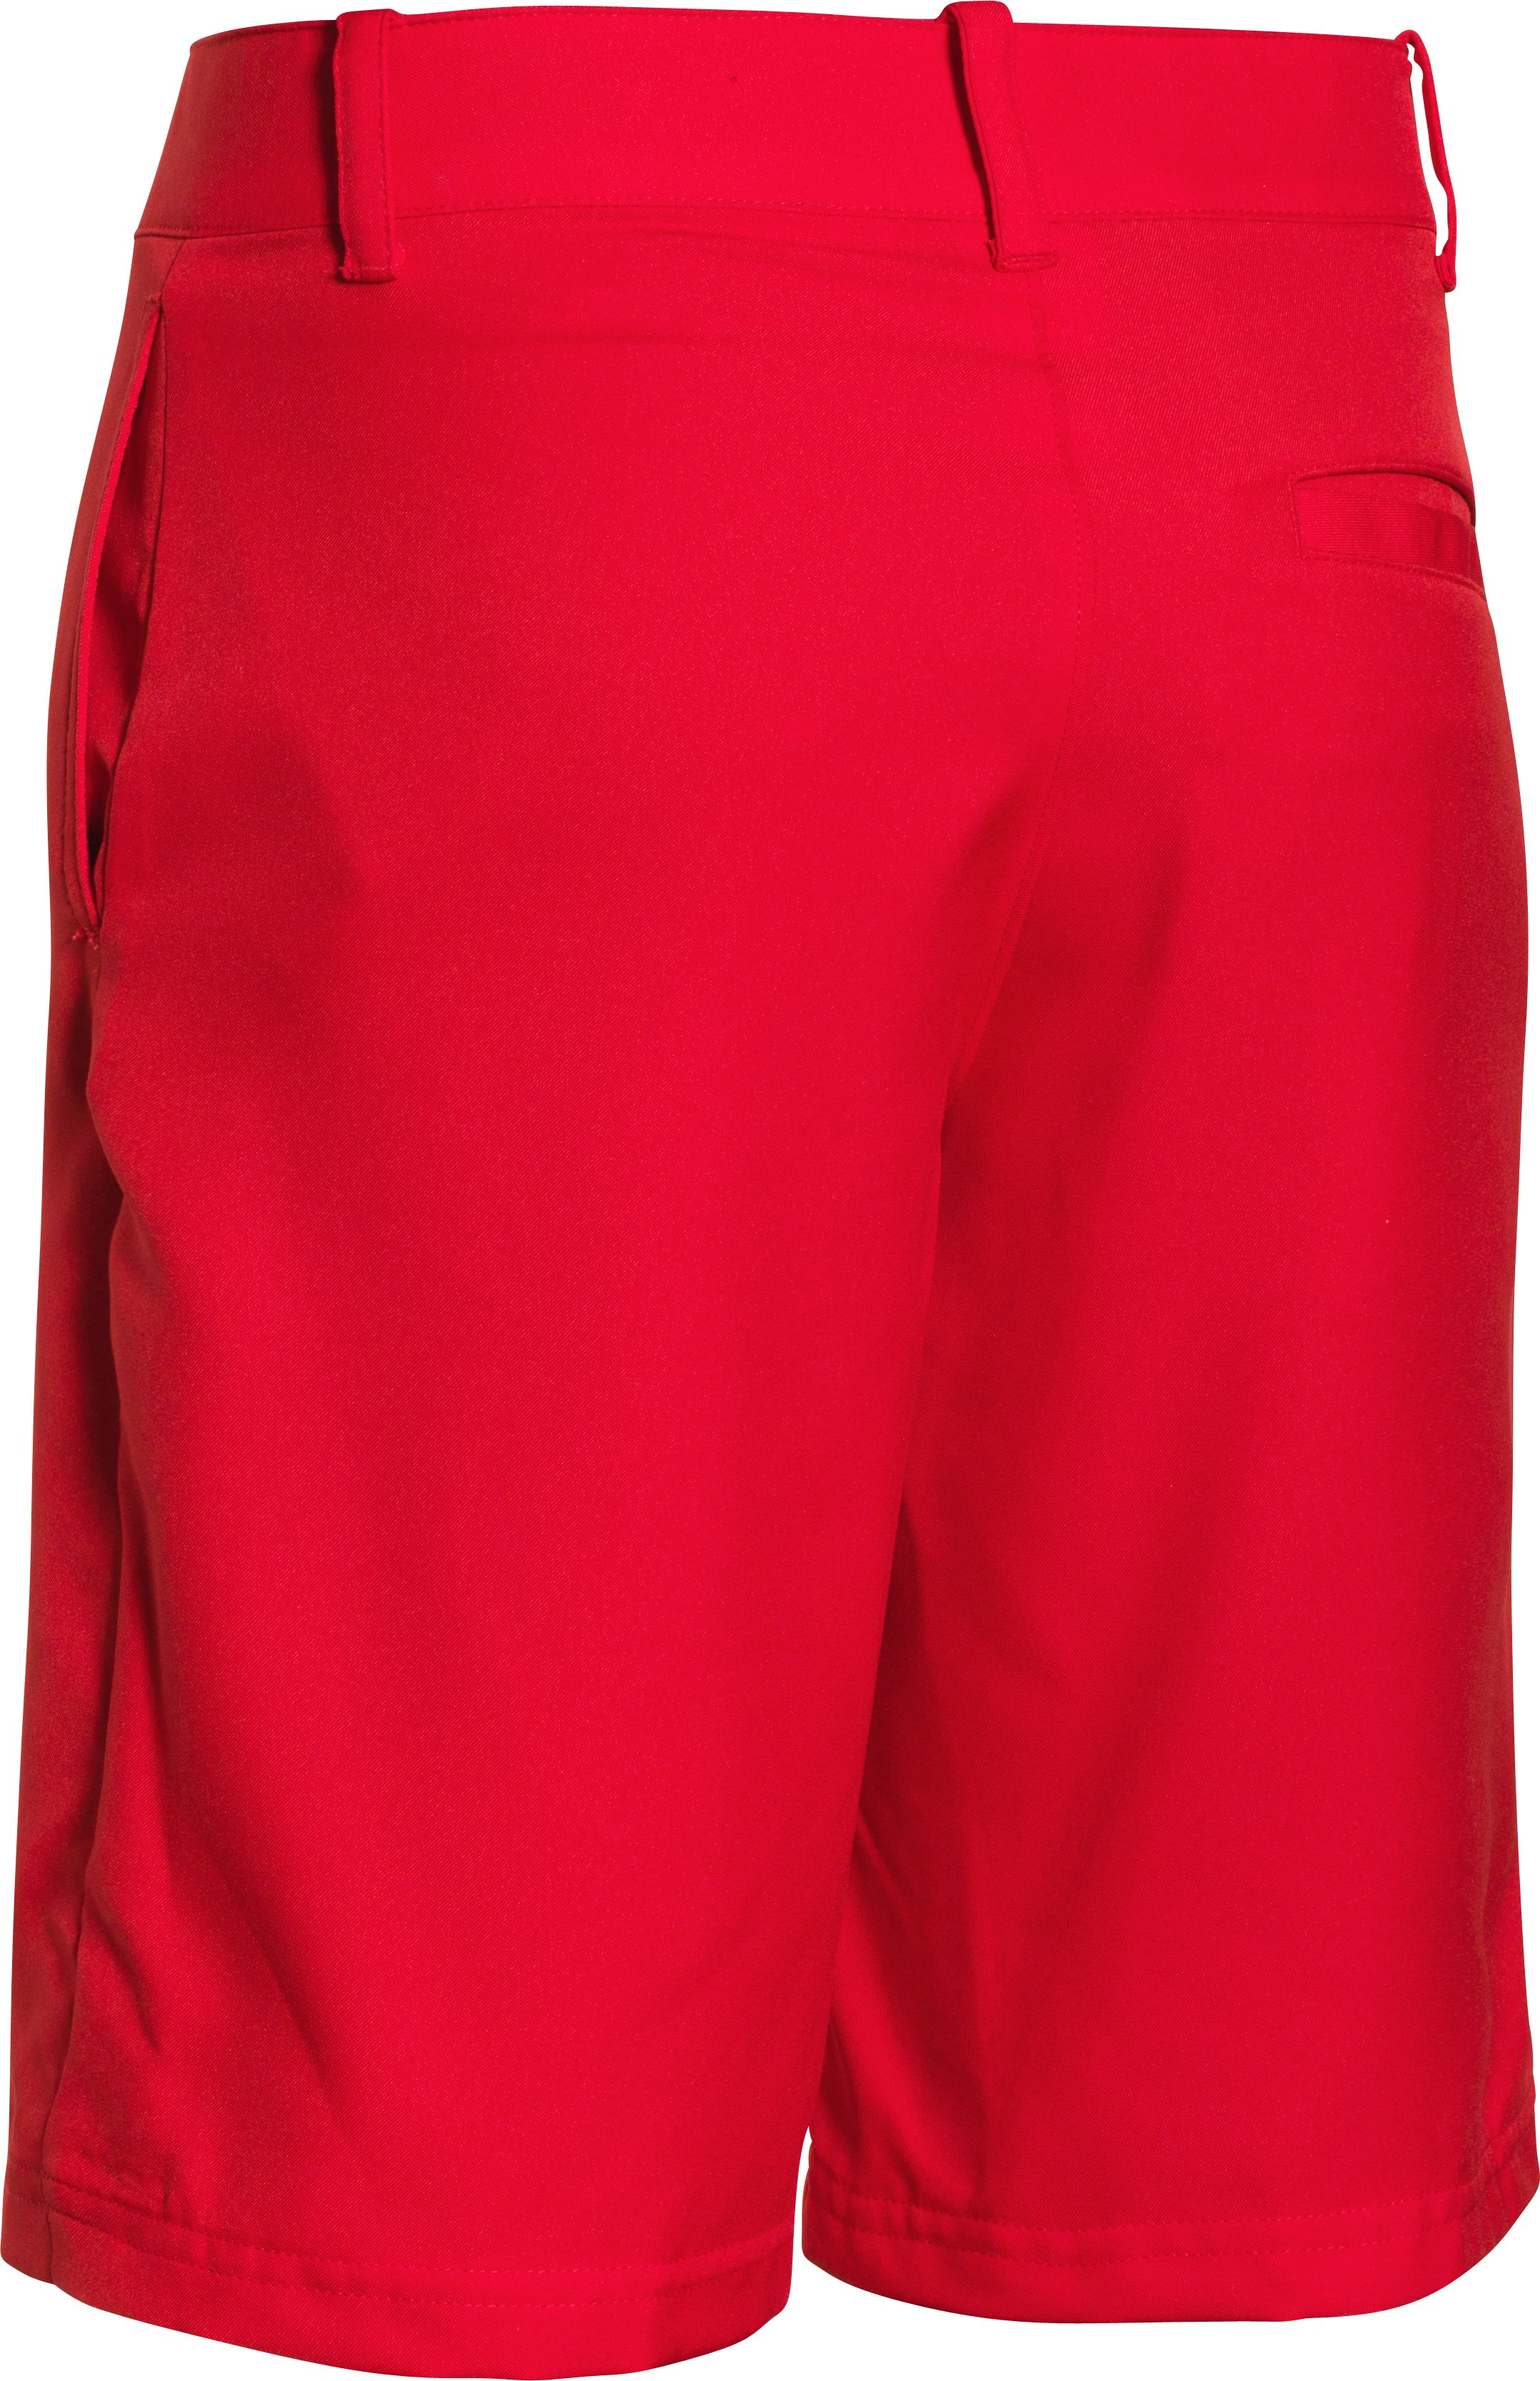 Boys' UA Medal Play Golf Shorts, RISK RED